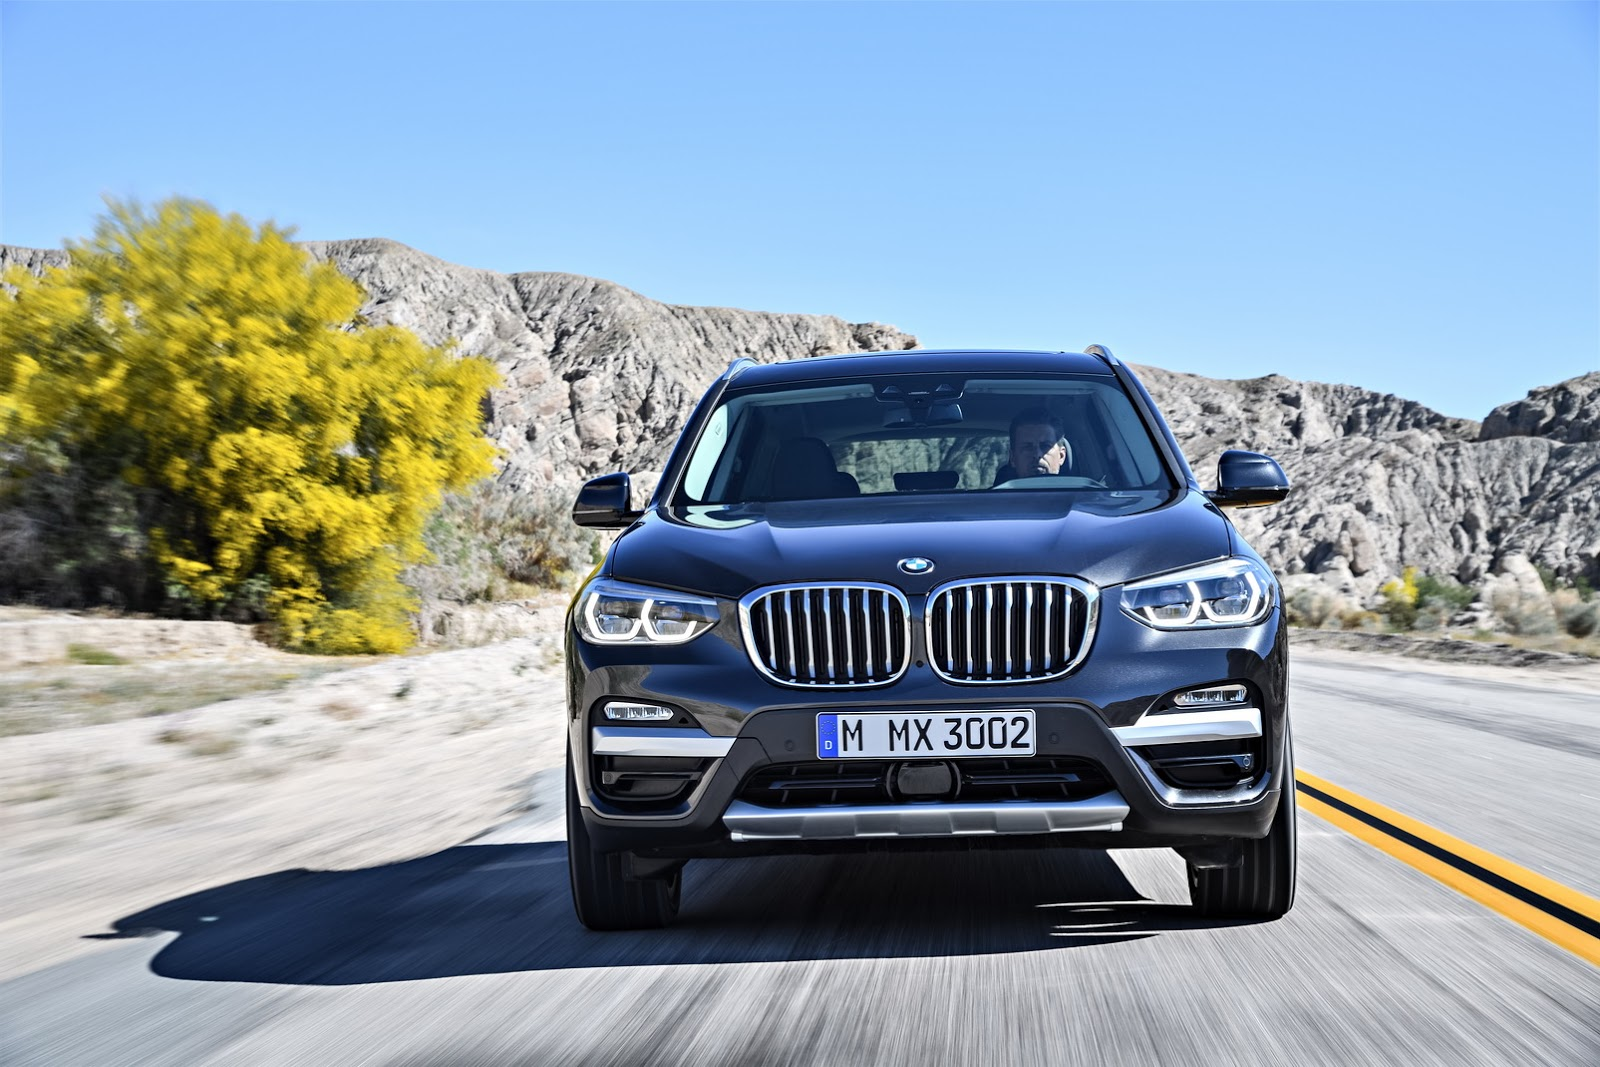 bmw-x3-all-new-2018-13.jpg